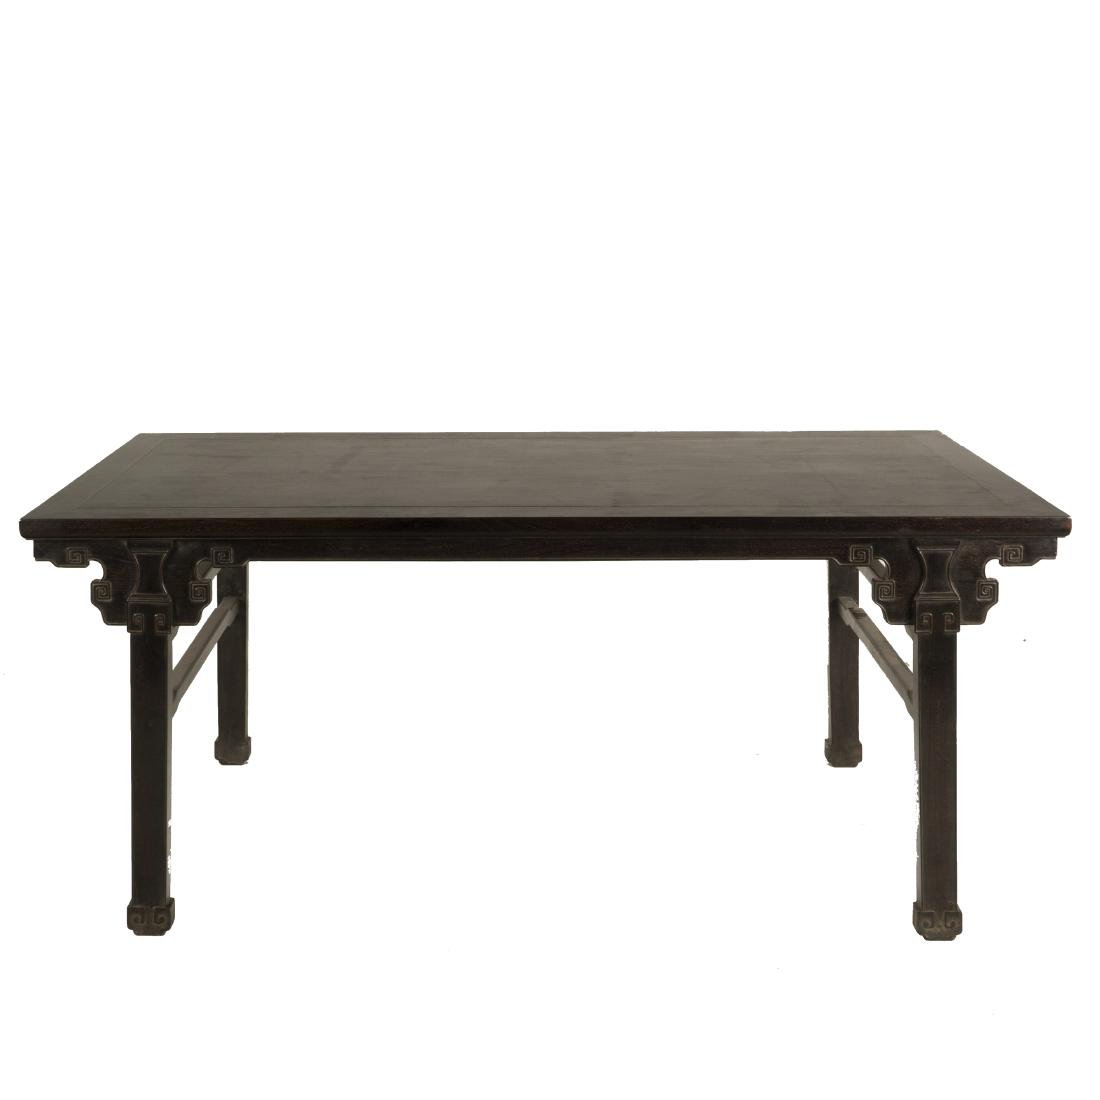 19TH C CHINESE ZITAN SCHOLAR PAINTING TABLE